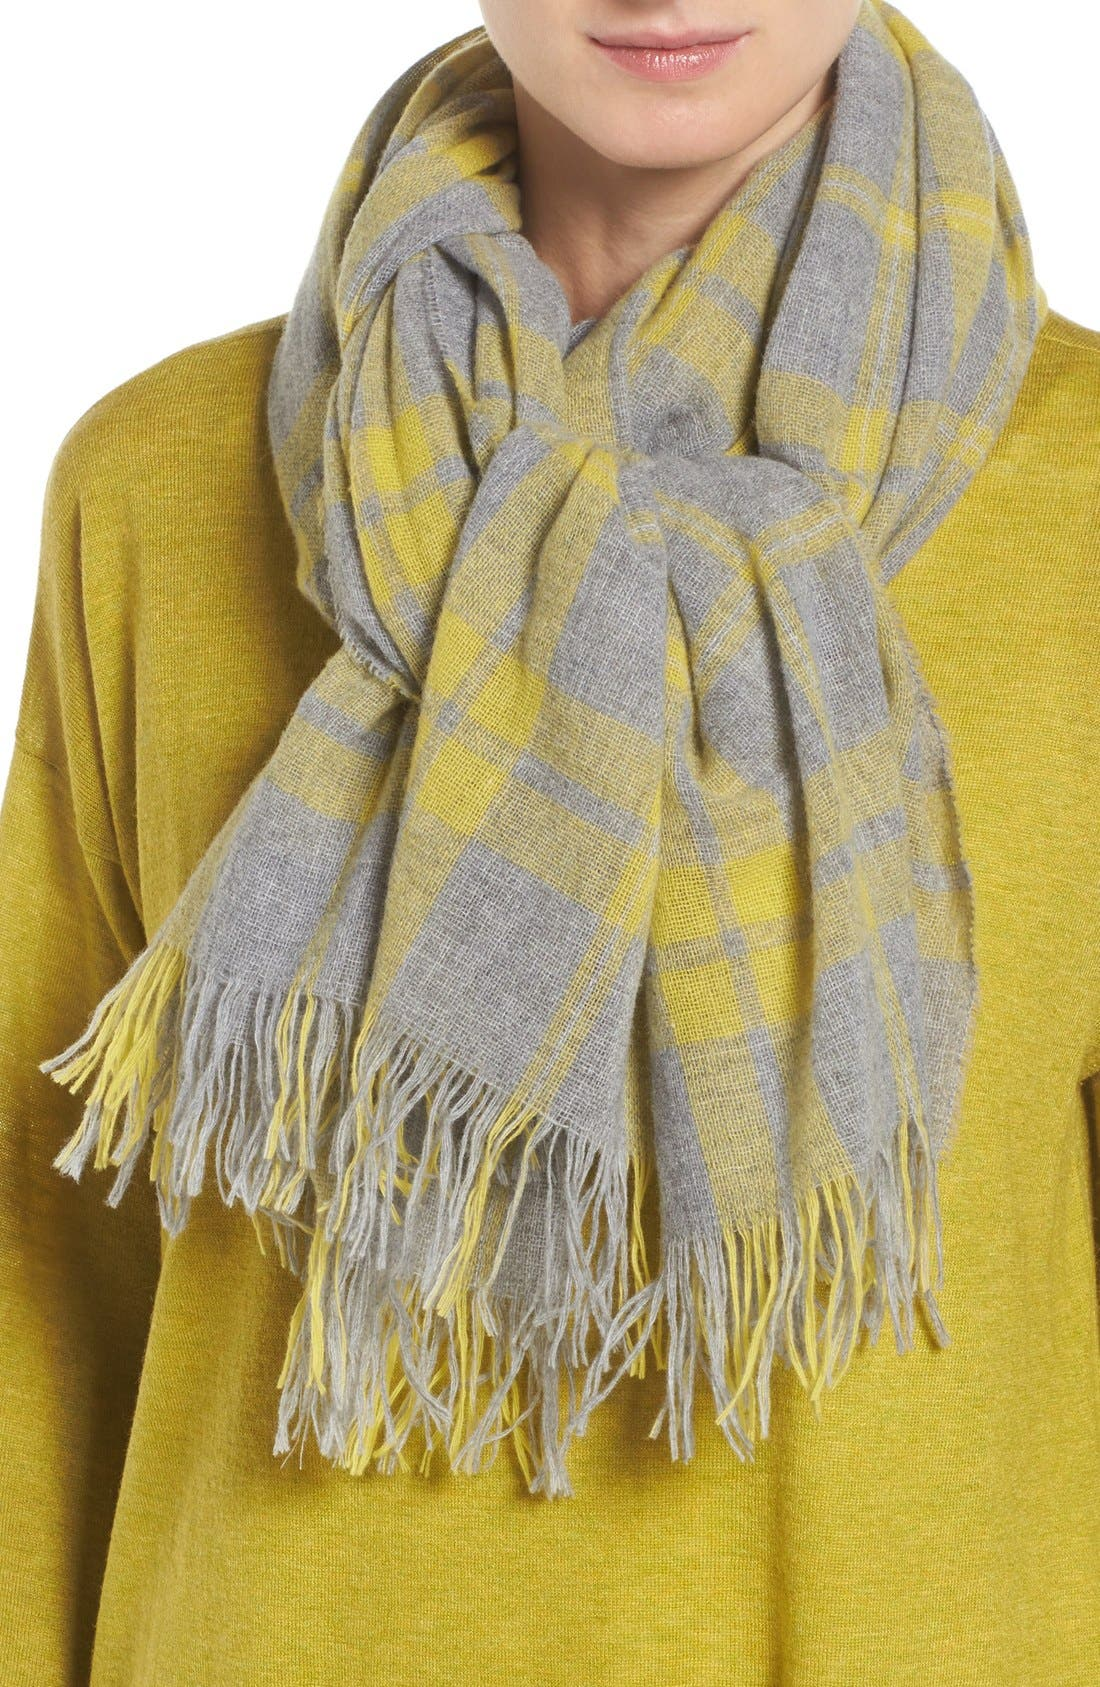 Main Image - Eileen Fisher Soft Wool & Cashmere Plaid Scarf